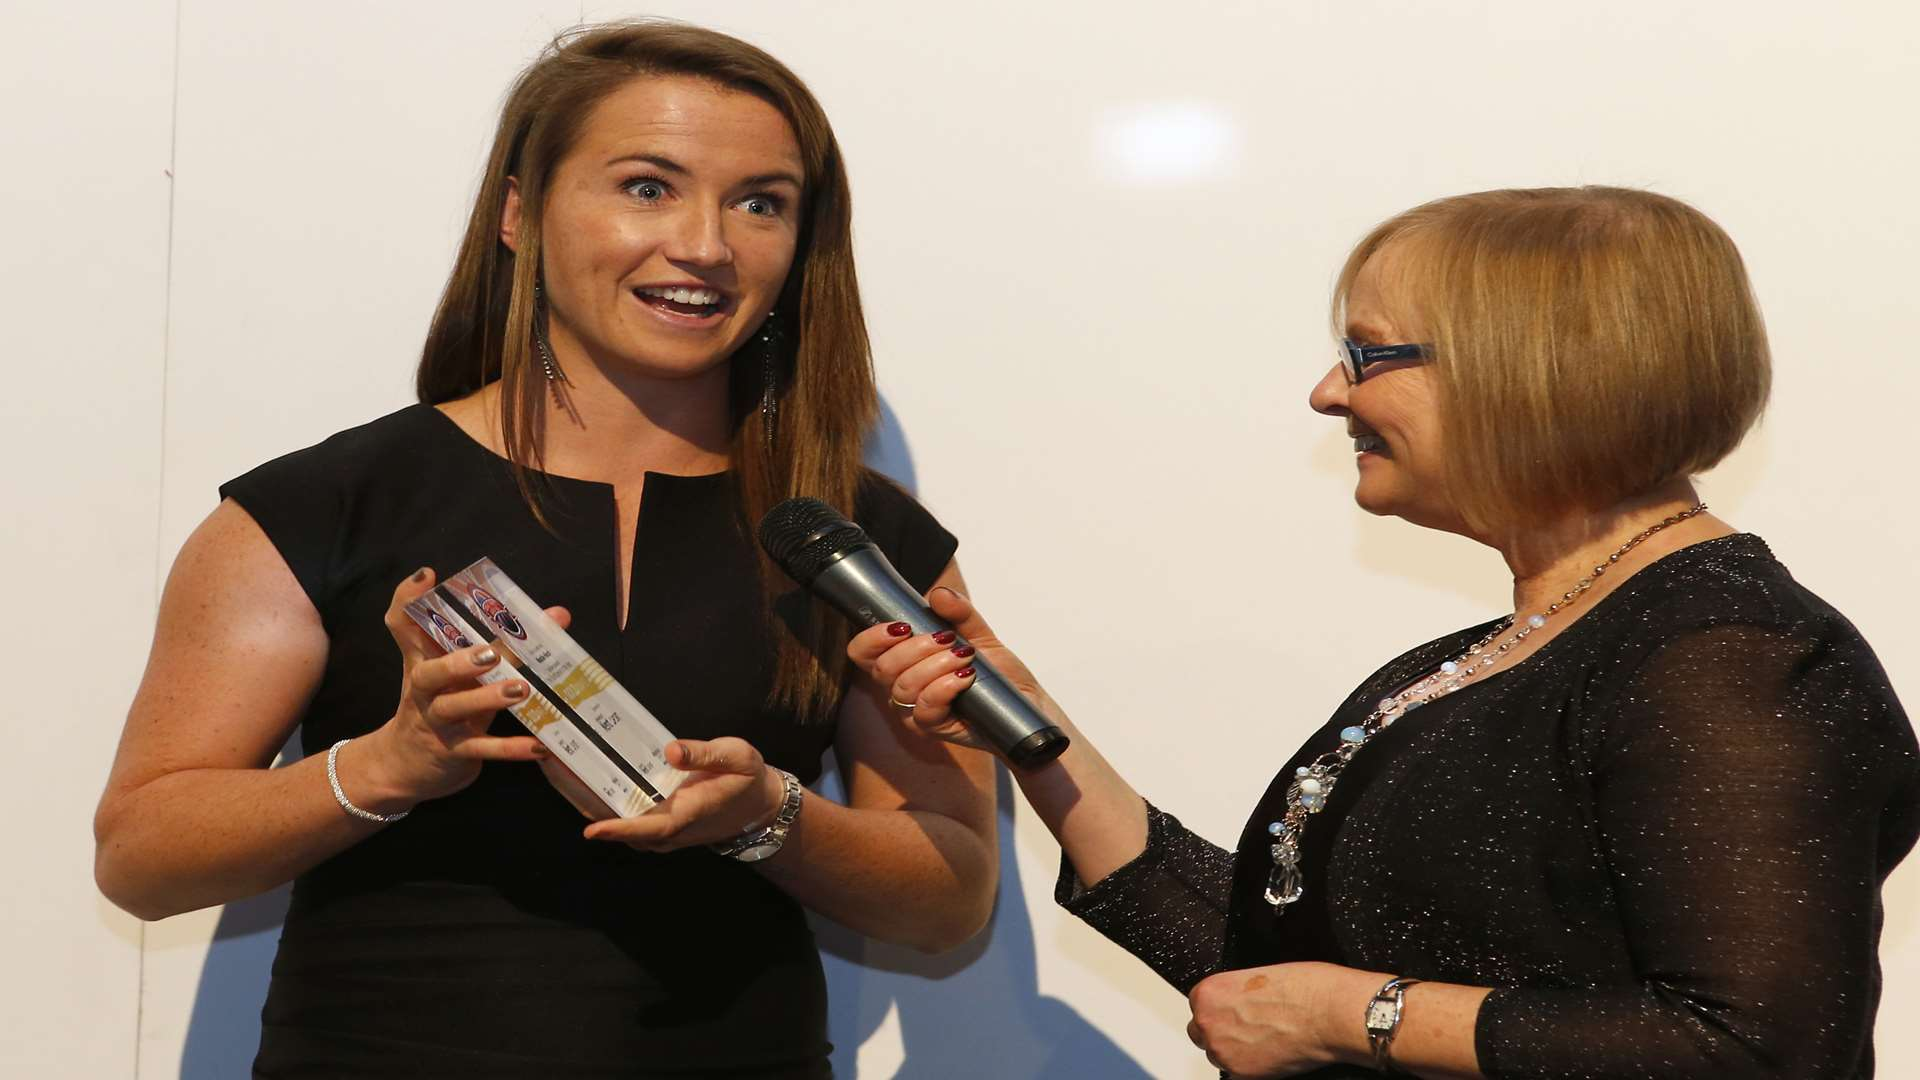 Maddie Hinch is interviewed by Eleanor Oldroyd after winning Sportsperson of the Year. Picture: Andy Jones